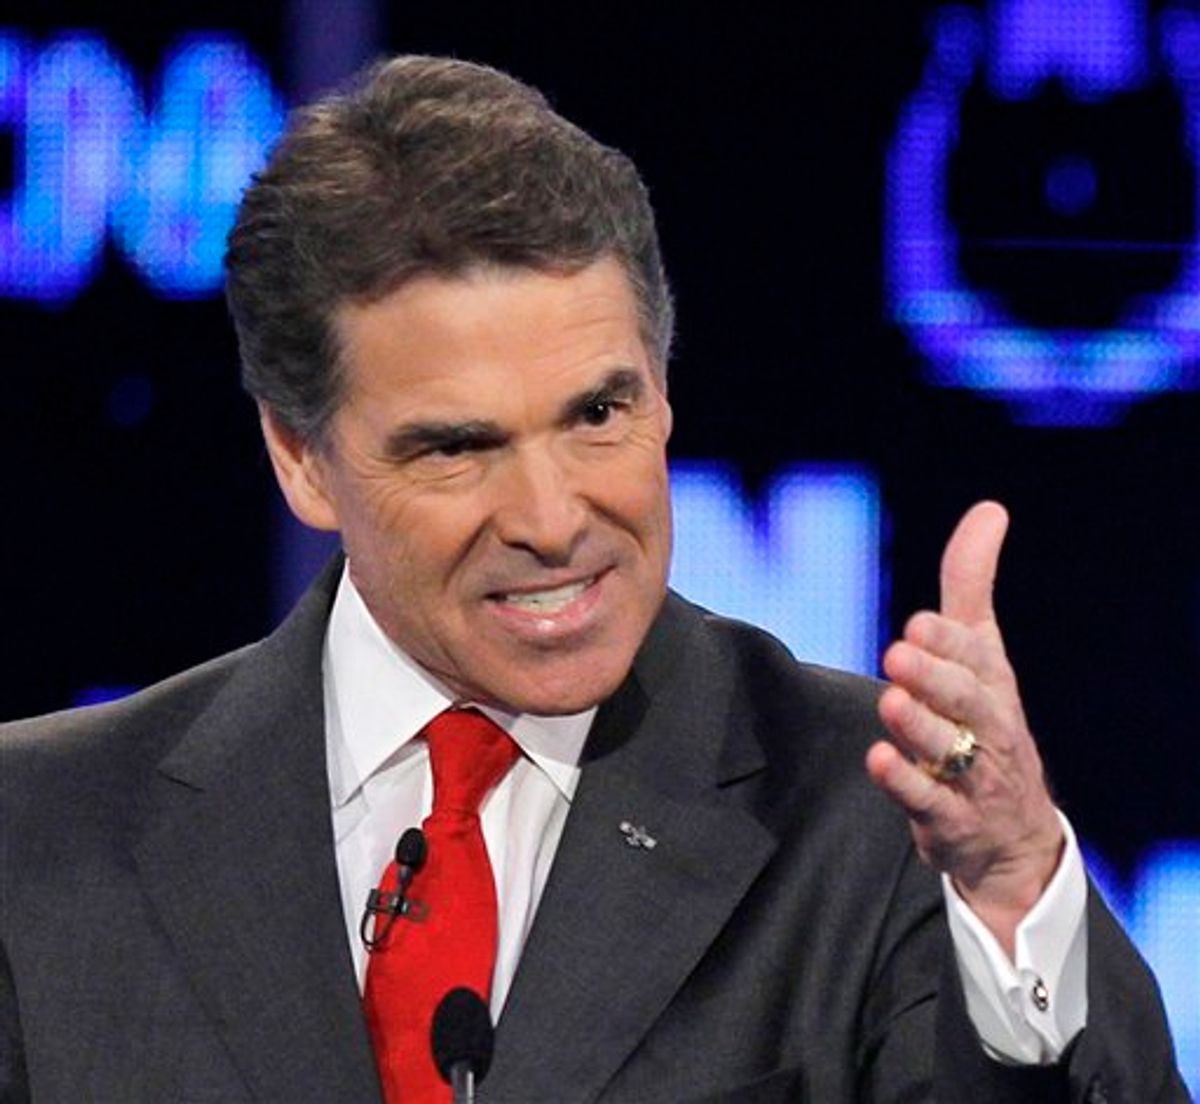 FILE - In this Oct. 18, 2011 file photo, Republican presidential candidate Texas Gov. Rick Perry makes a point during a Republican presidential debate in Las Vegas. (AP Photo/Chris Carlson, File)         (AP)